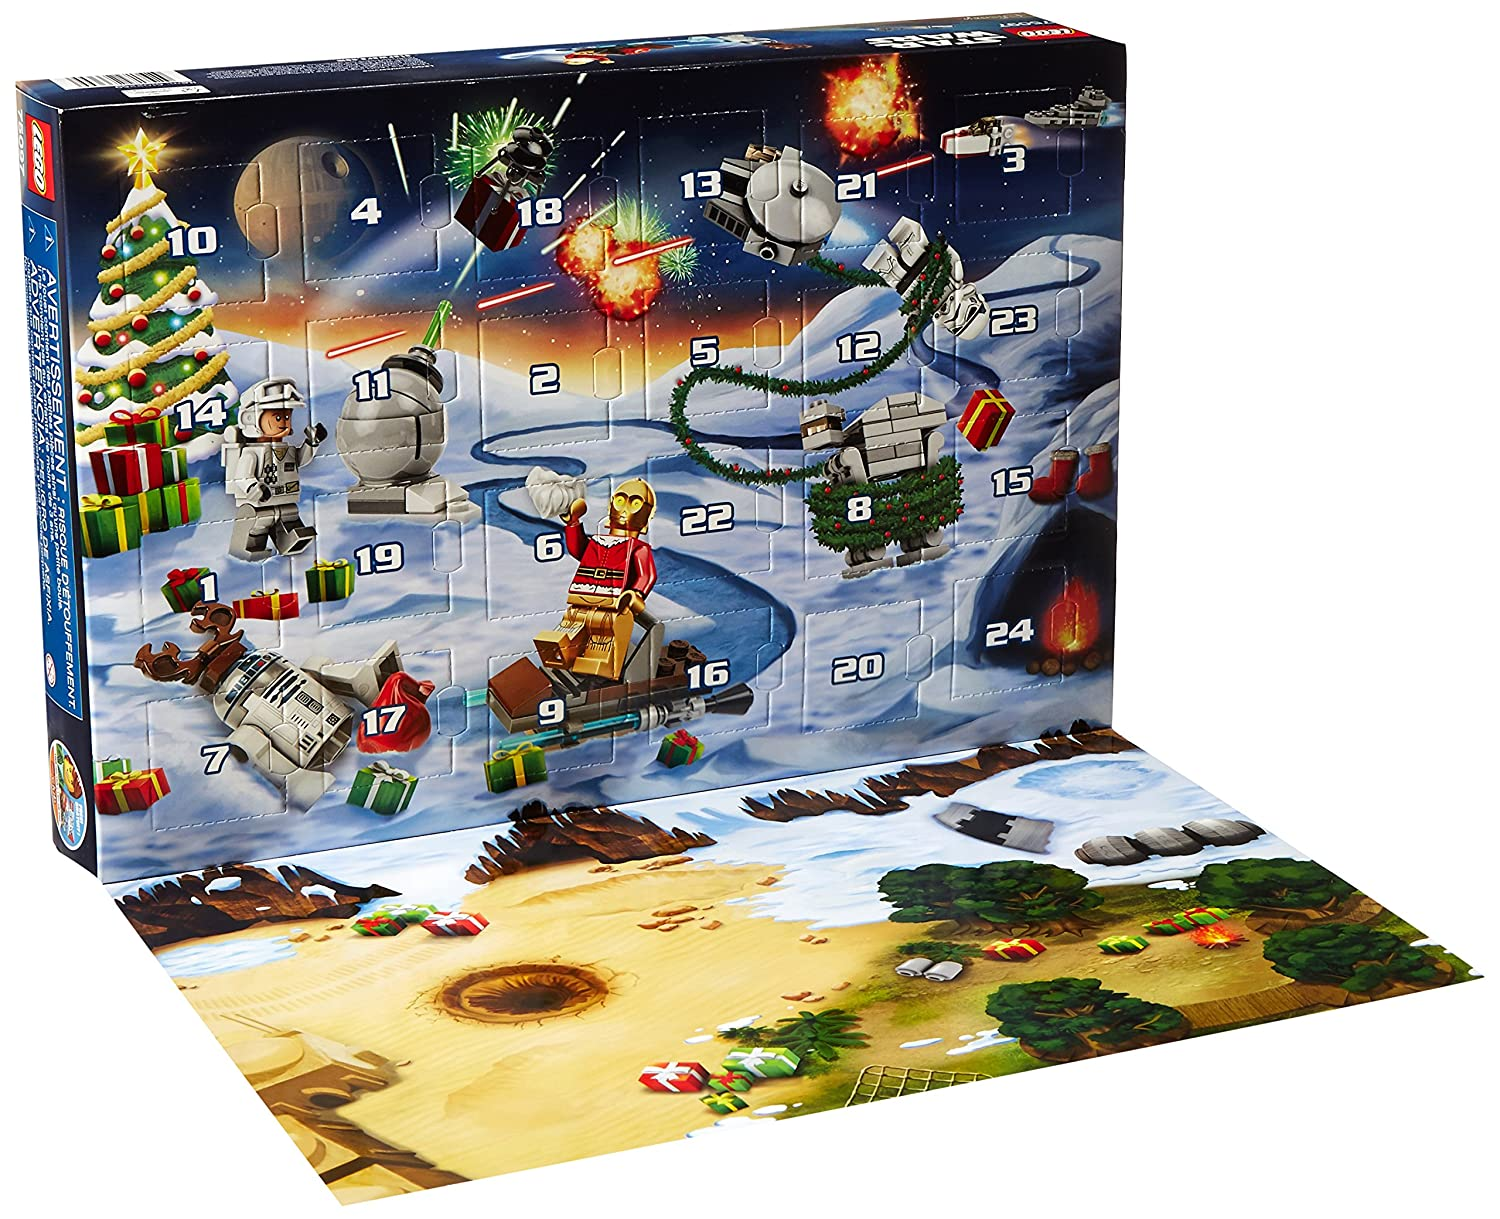 Star Wars Advent Calendar Lego Building Kit